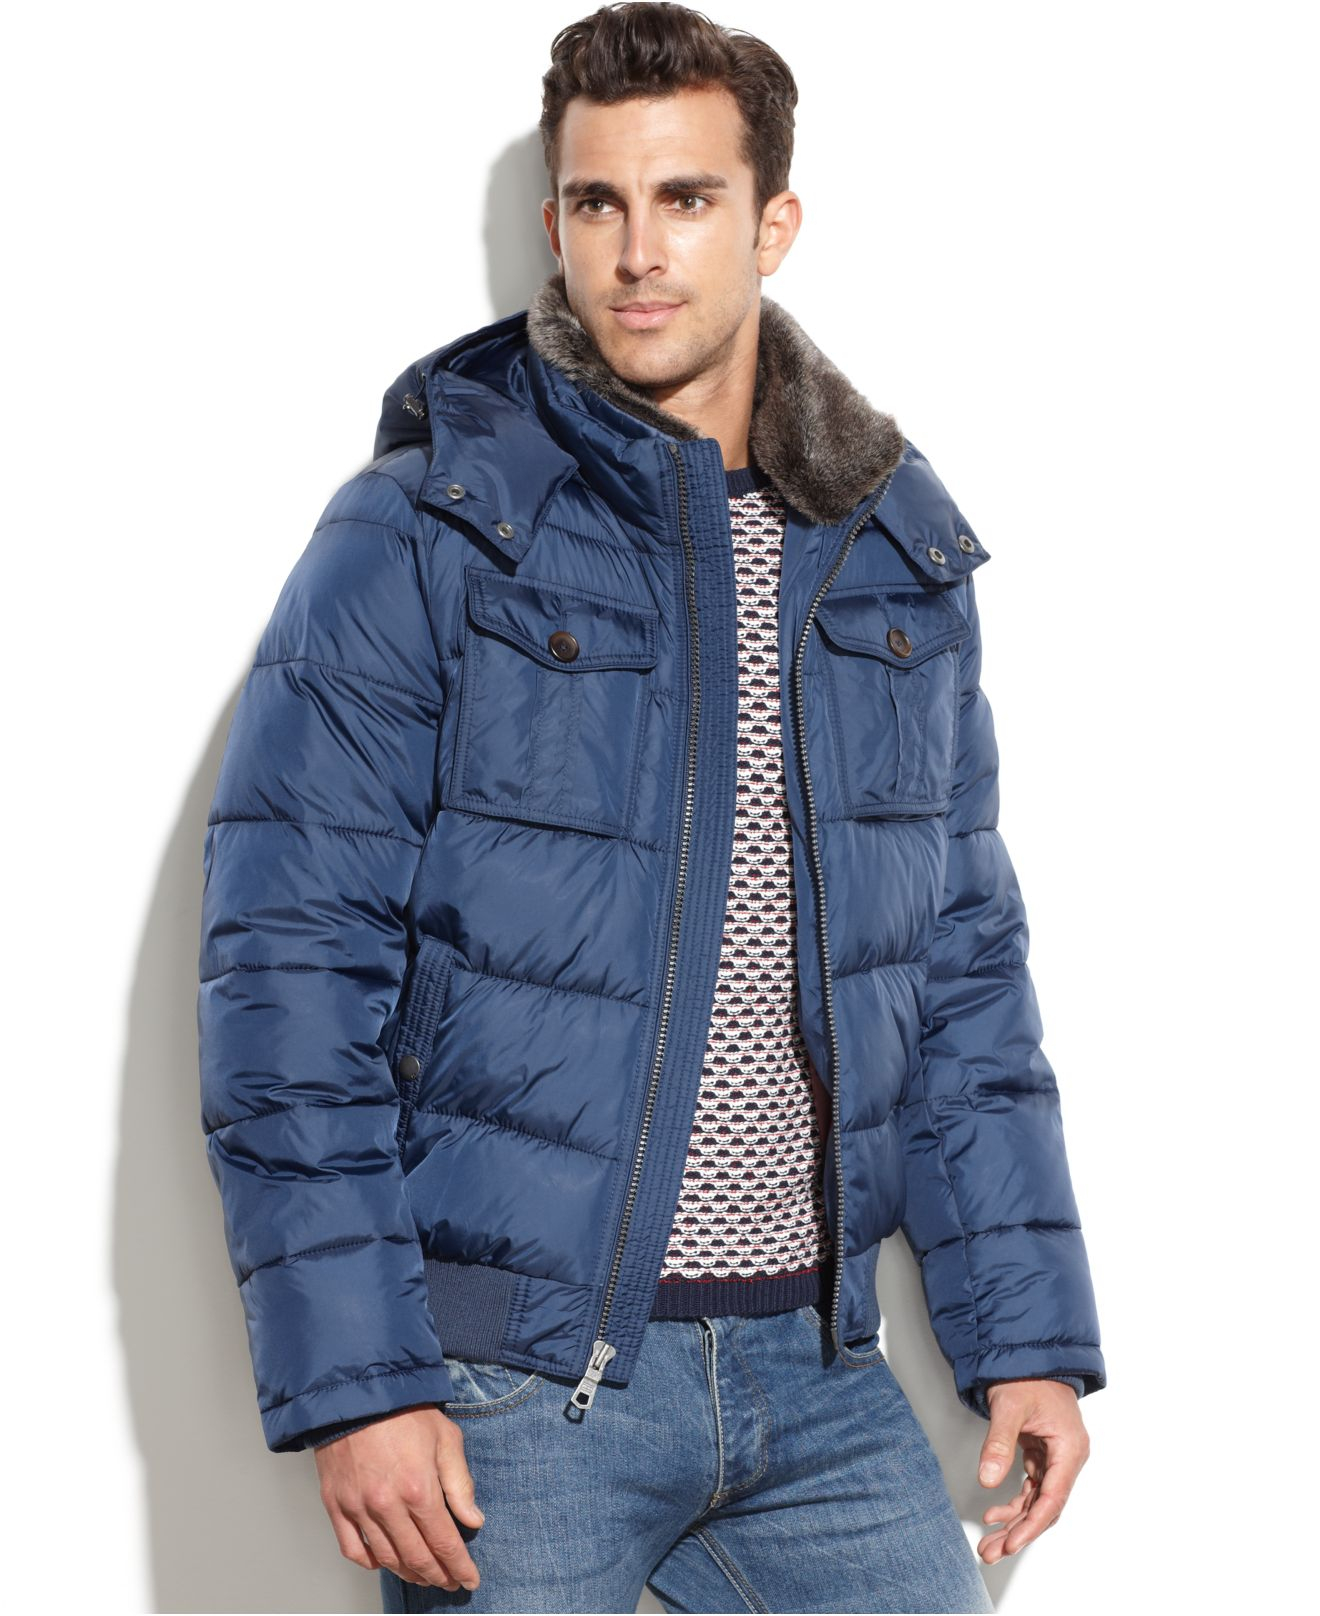 lyst tommy hilfiger puffer coat with faux fur collar in. Black Bedroom Furniture Sets. Home Design Ideas